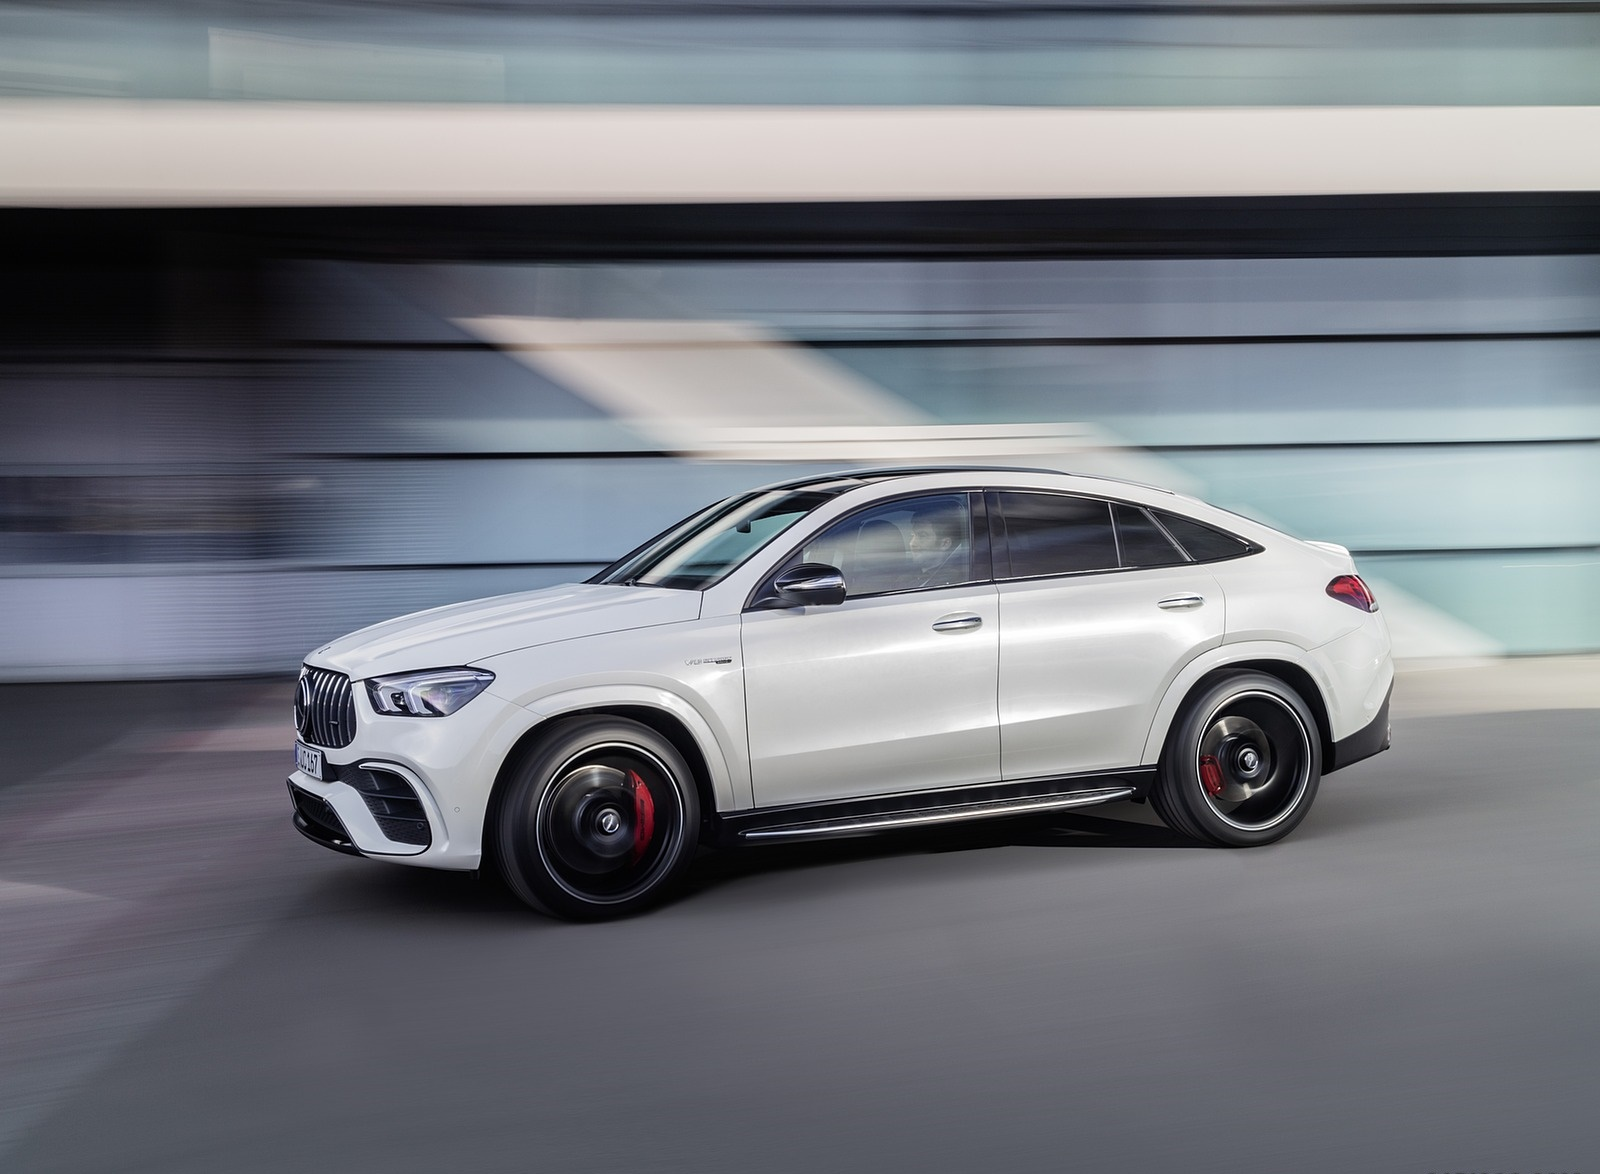 2021 Mercedes-AMG GLE 63 S 4MATIC+ Coupe (Color: Diamond White) Front Three-Quarter Wallpapers (3)